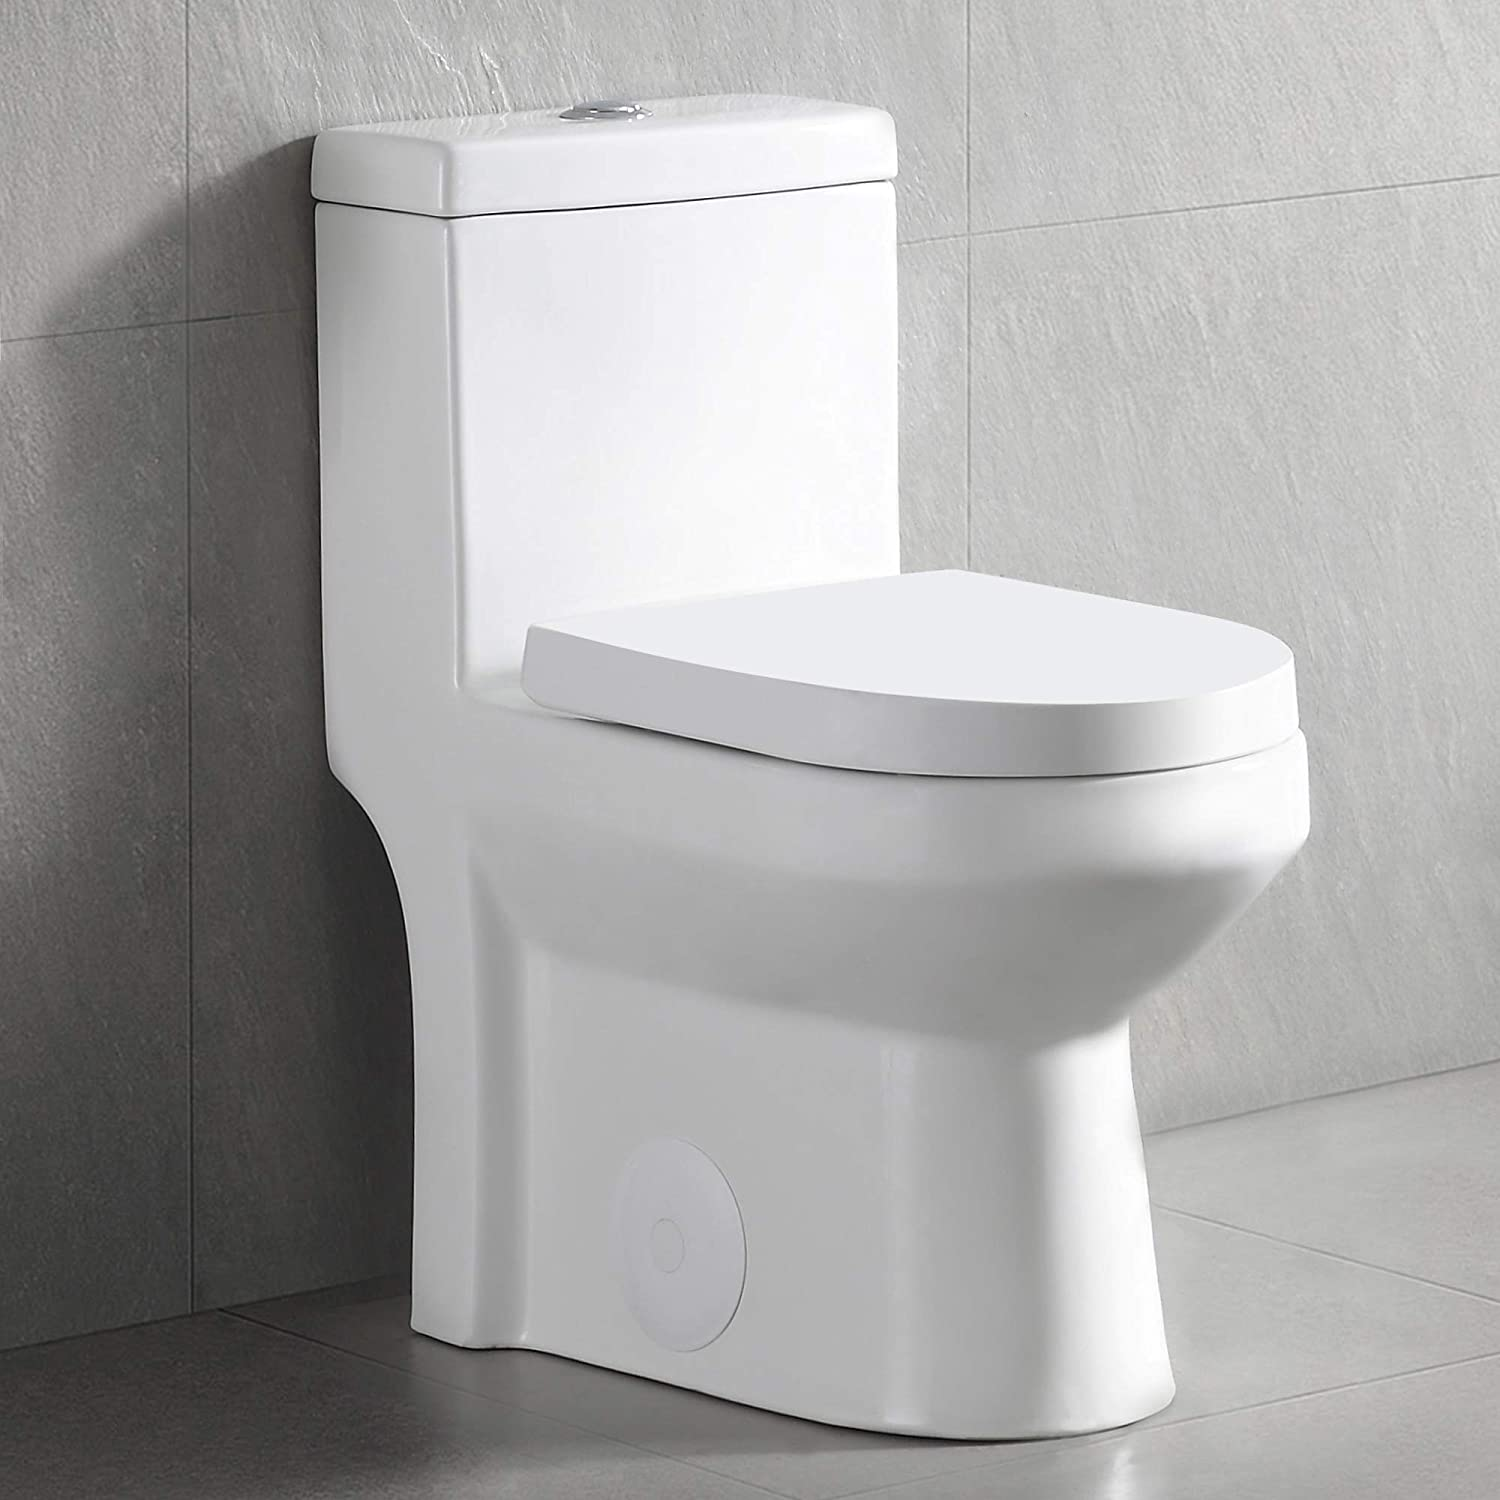 Deervalley Dv 1f52812 Modern Small One Piece Toilet Compact Bathroom Tiny Mini Commode Water Closet Dual Flush Concealed White Amazon Com